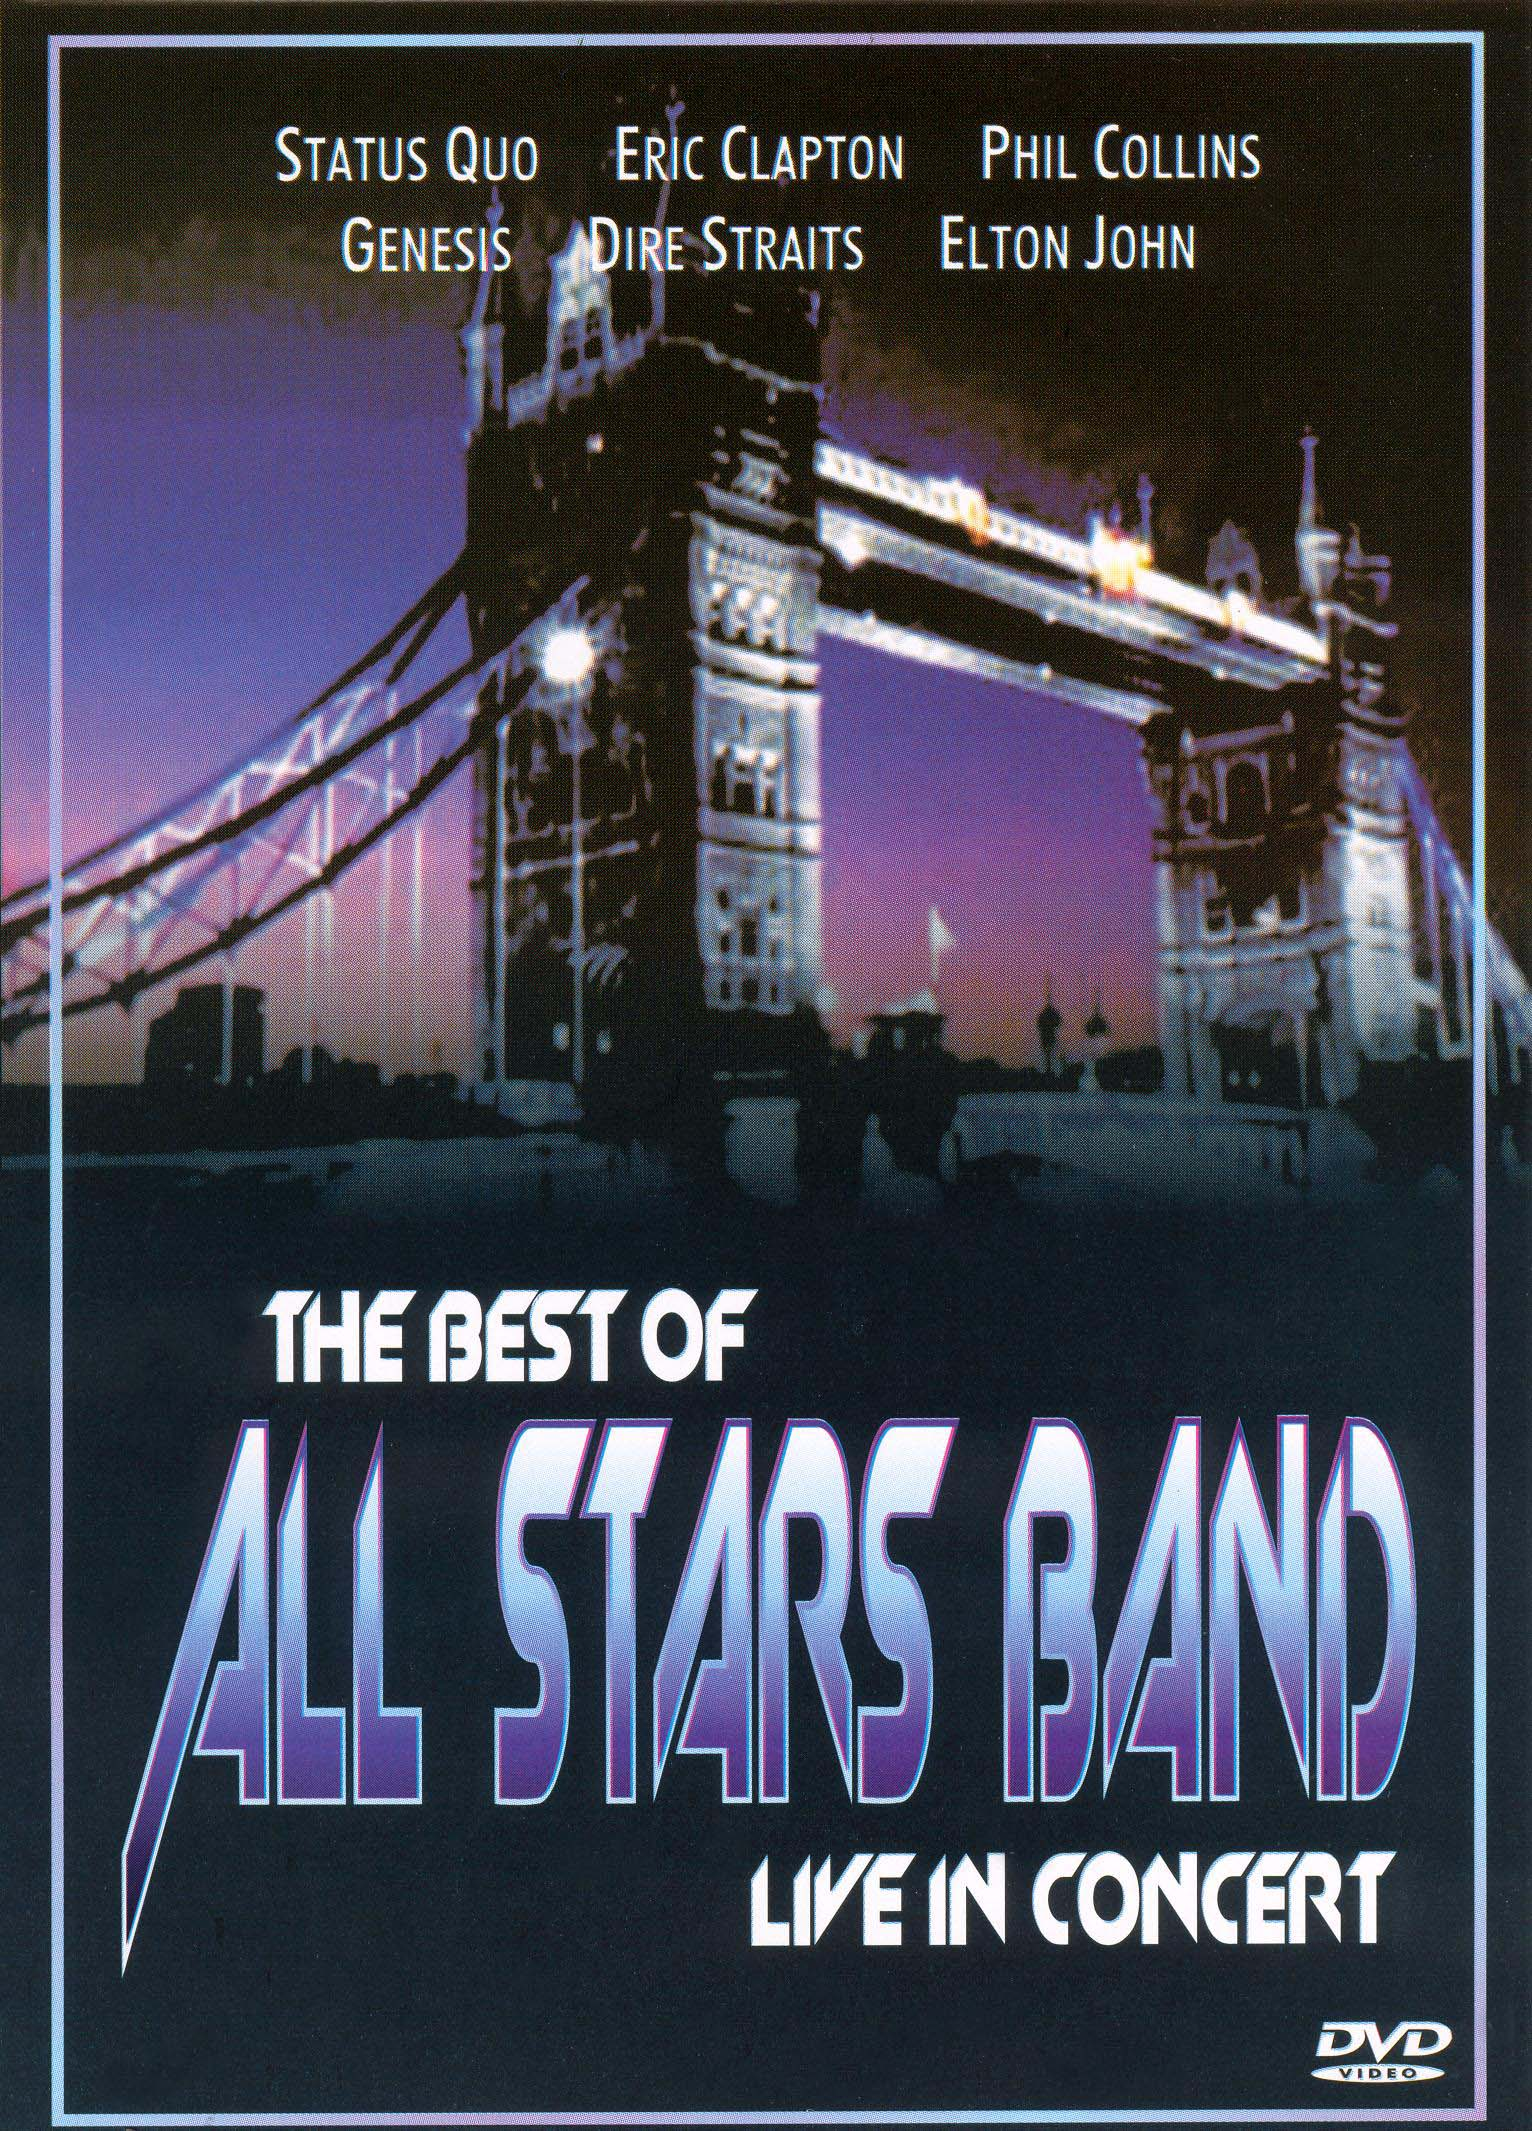 Best of All Stars Band Live